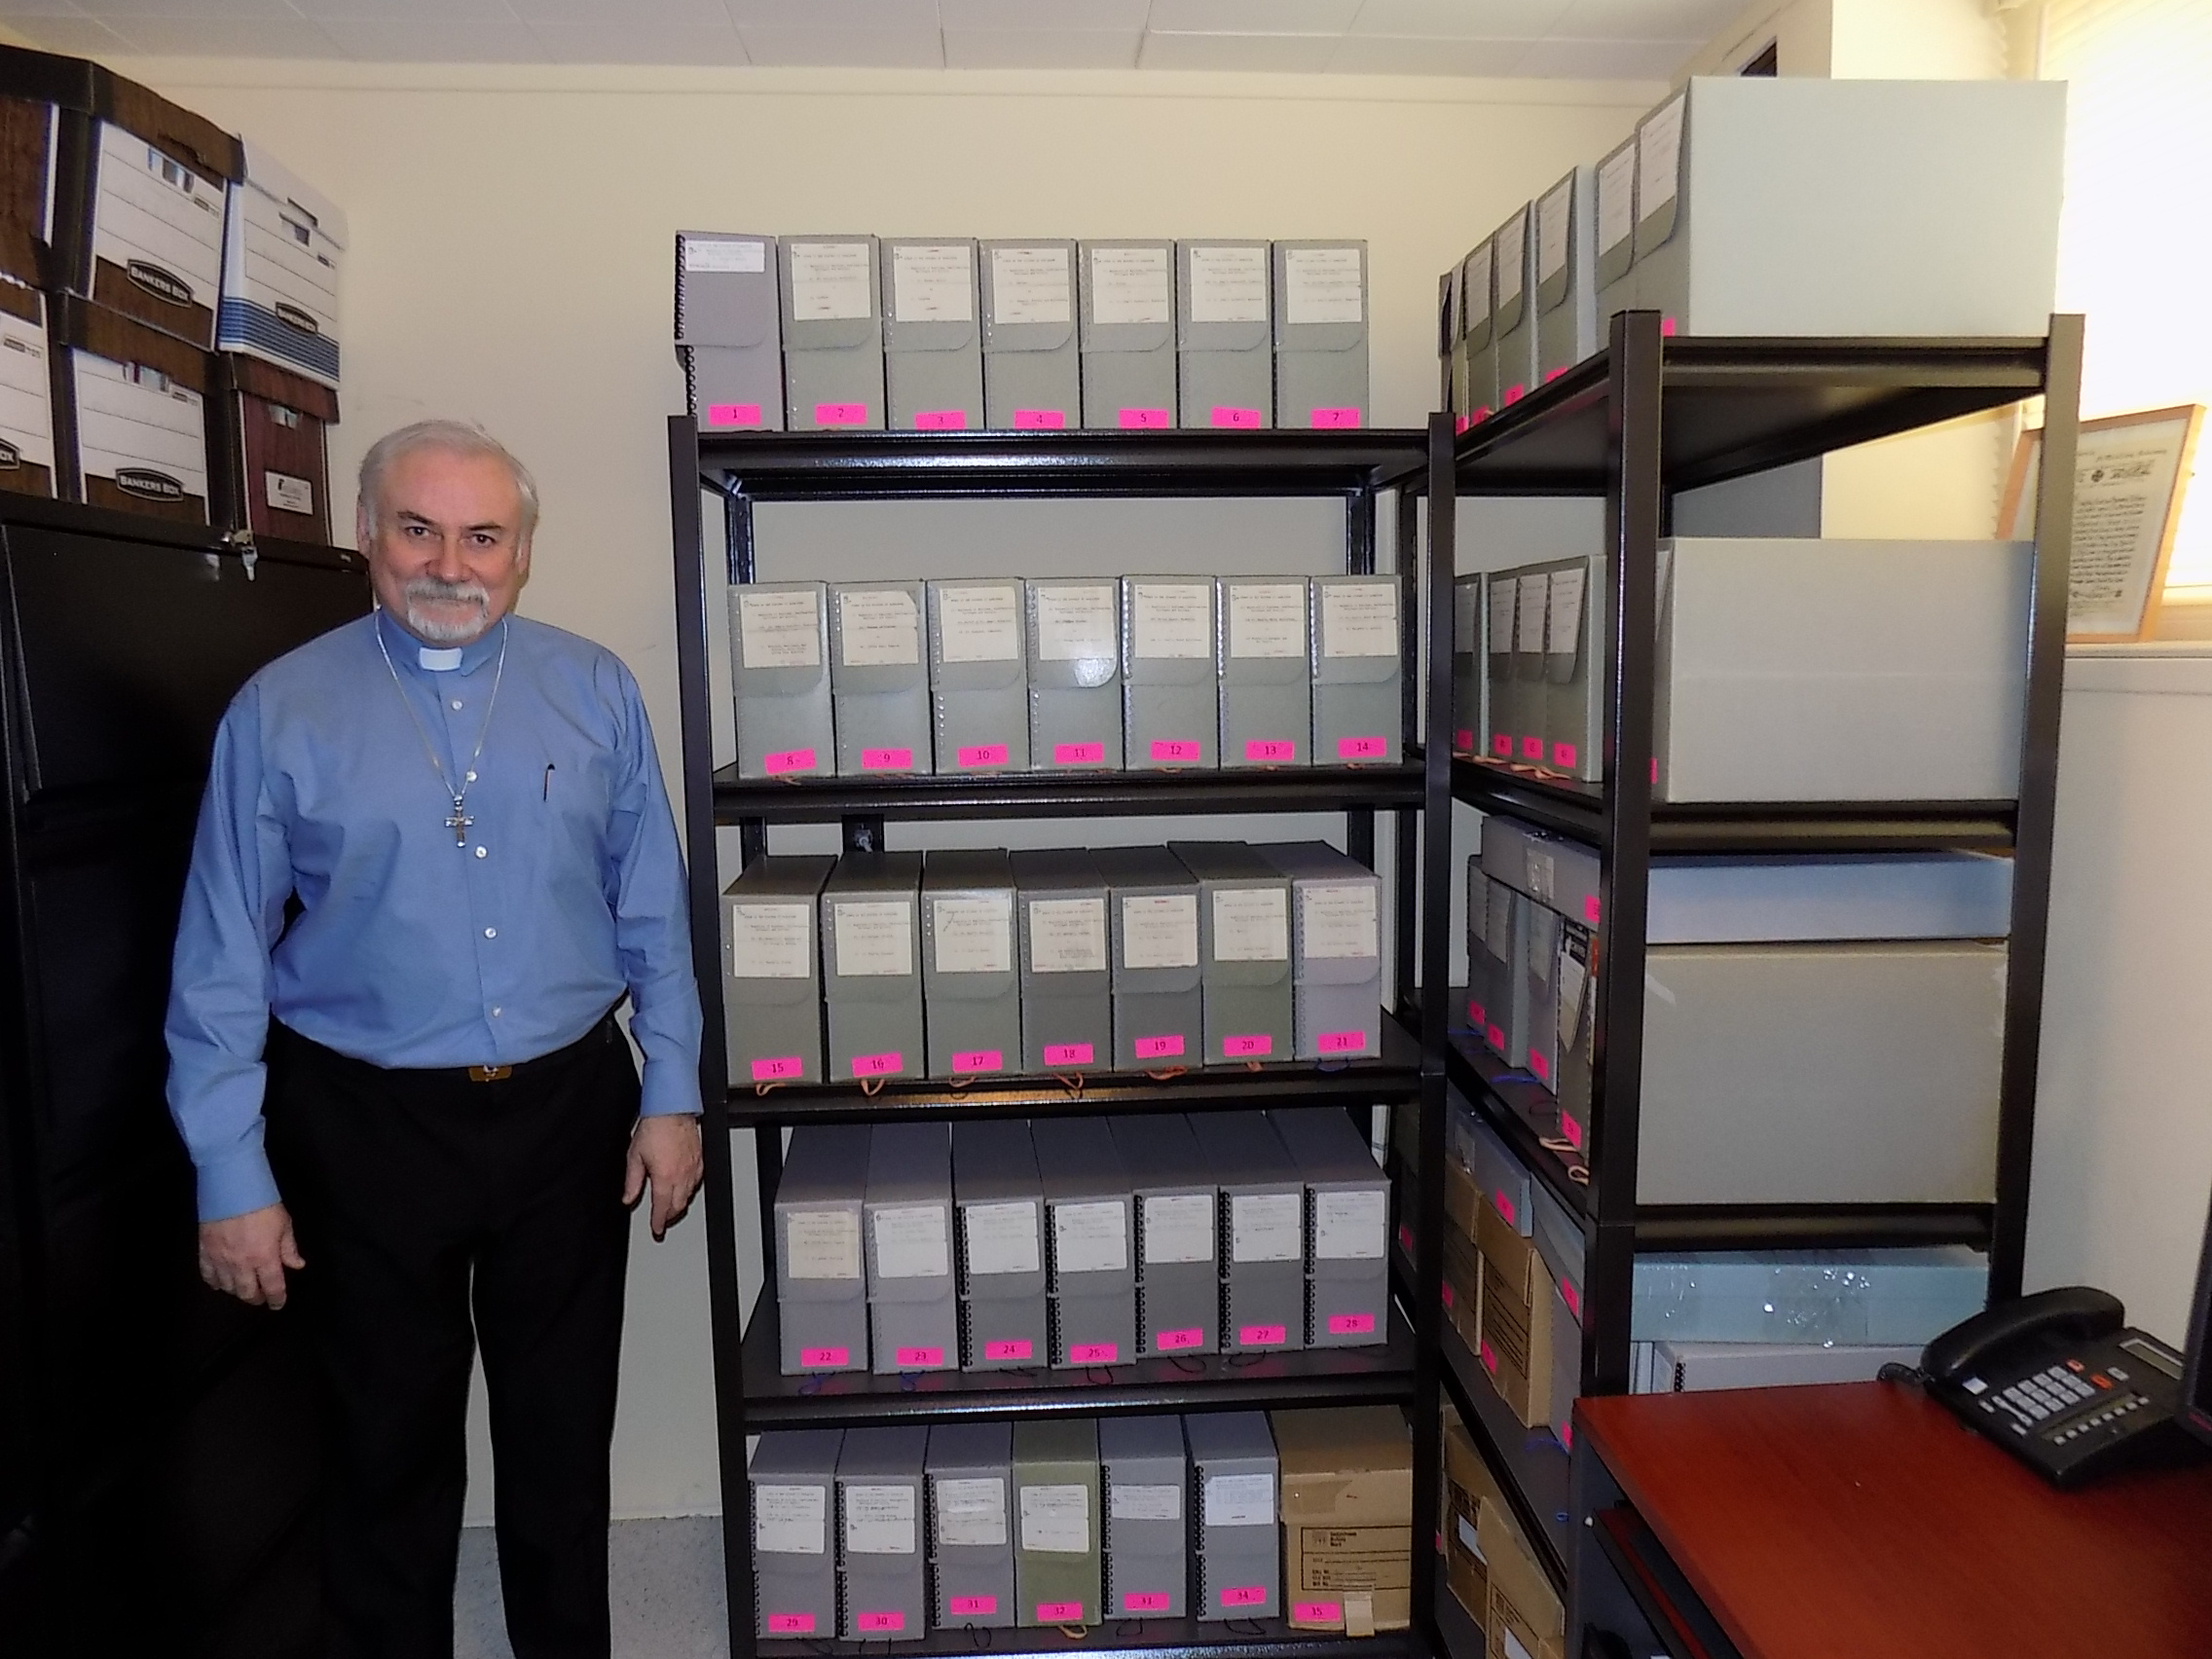 The Diocesan Archivist with some of the synod archives collection of registers of baptism, confirmation, marriage burial and church services stored within the synod office archive collection.  Photograph courtesy of The Rev. Peter Coolan